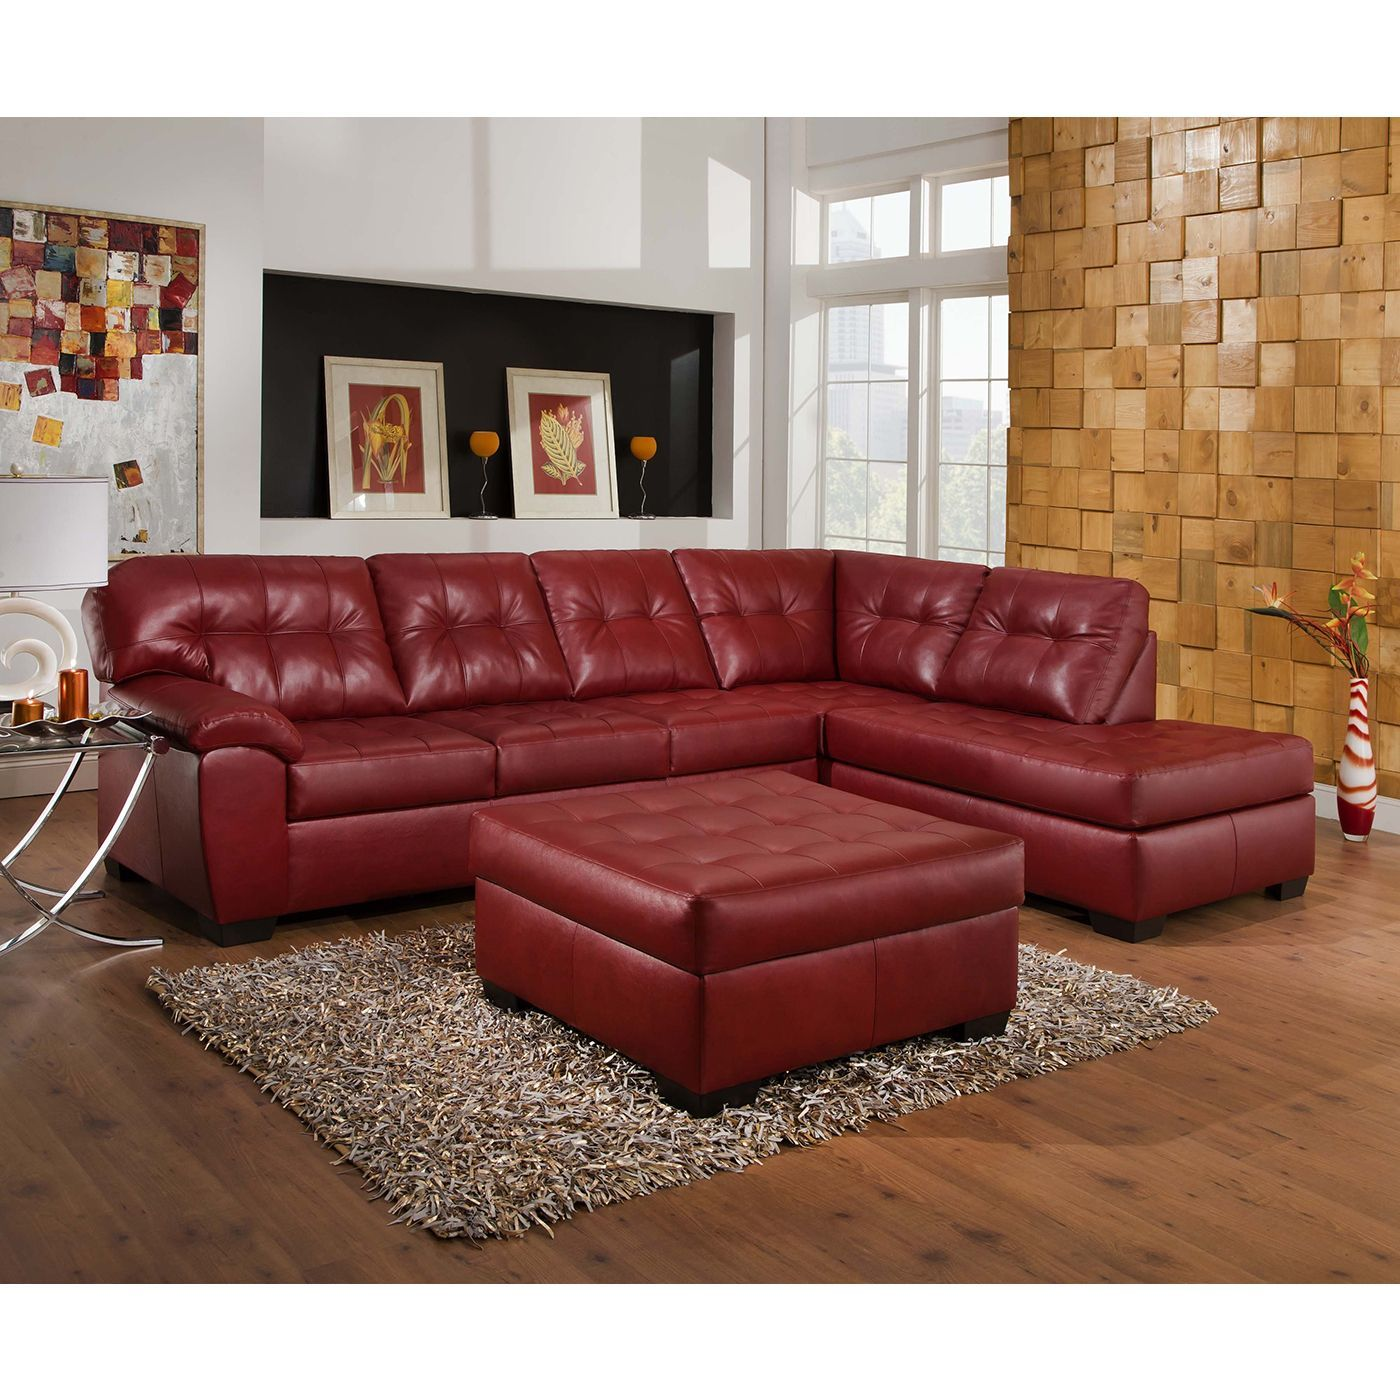 Overstock Com Online Shopping Bedding Furniture Electronics Jewelry Clothing More Red Sectional Sofa Red Leather Sofa Sectional Sectional Sofa With Chaise